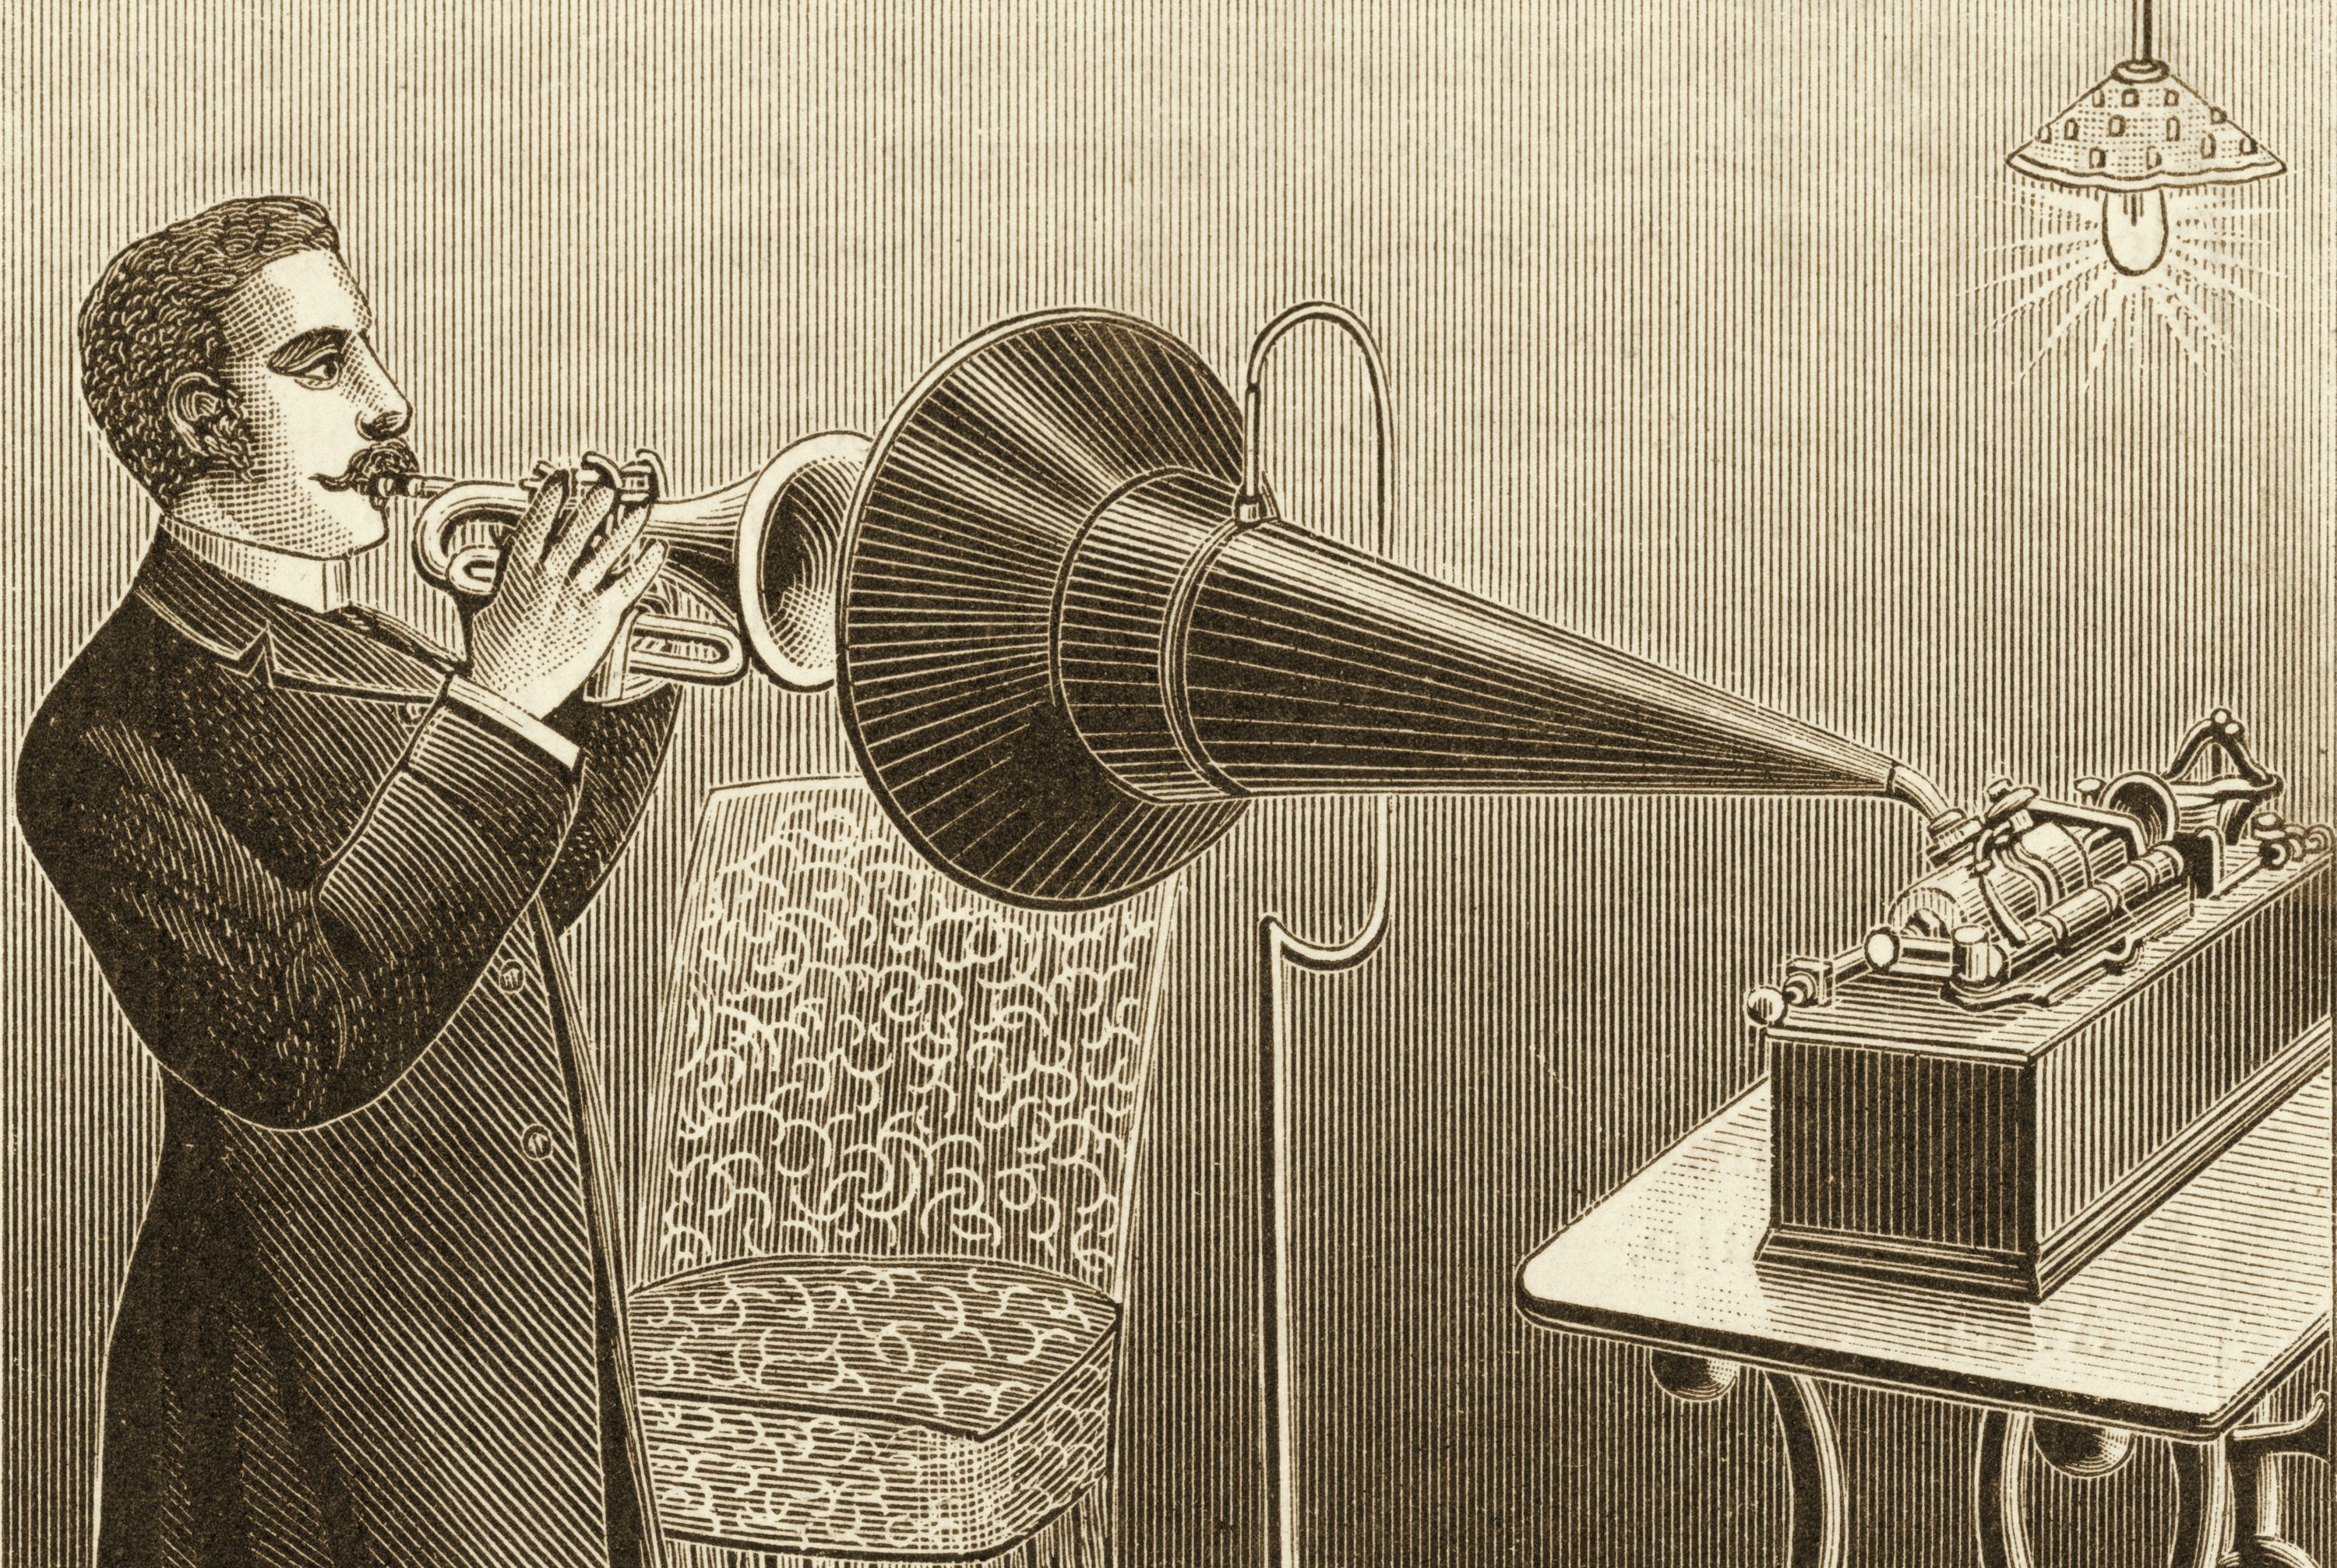 Engraved illustration of corner player being recorded by a phonograph.